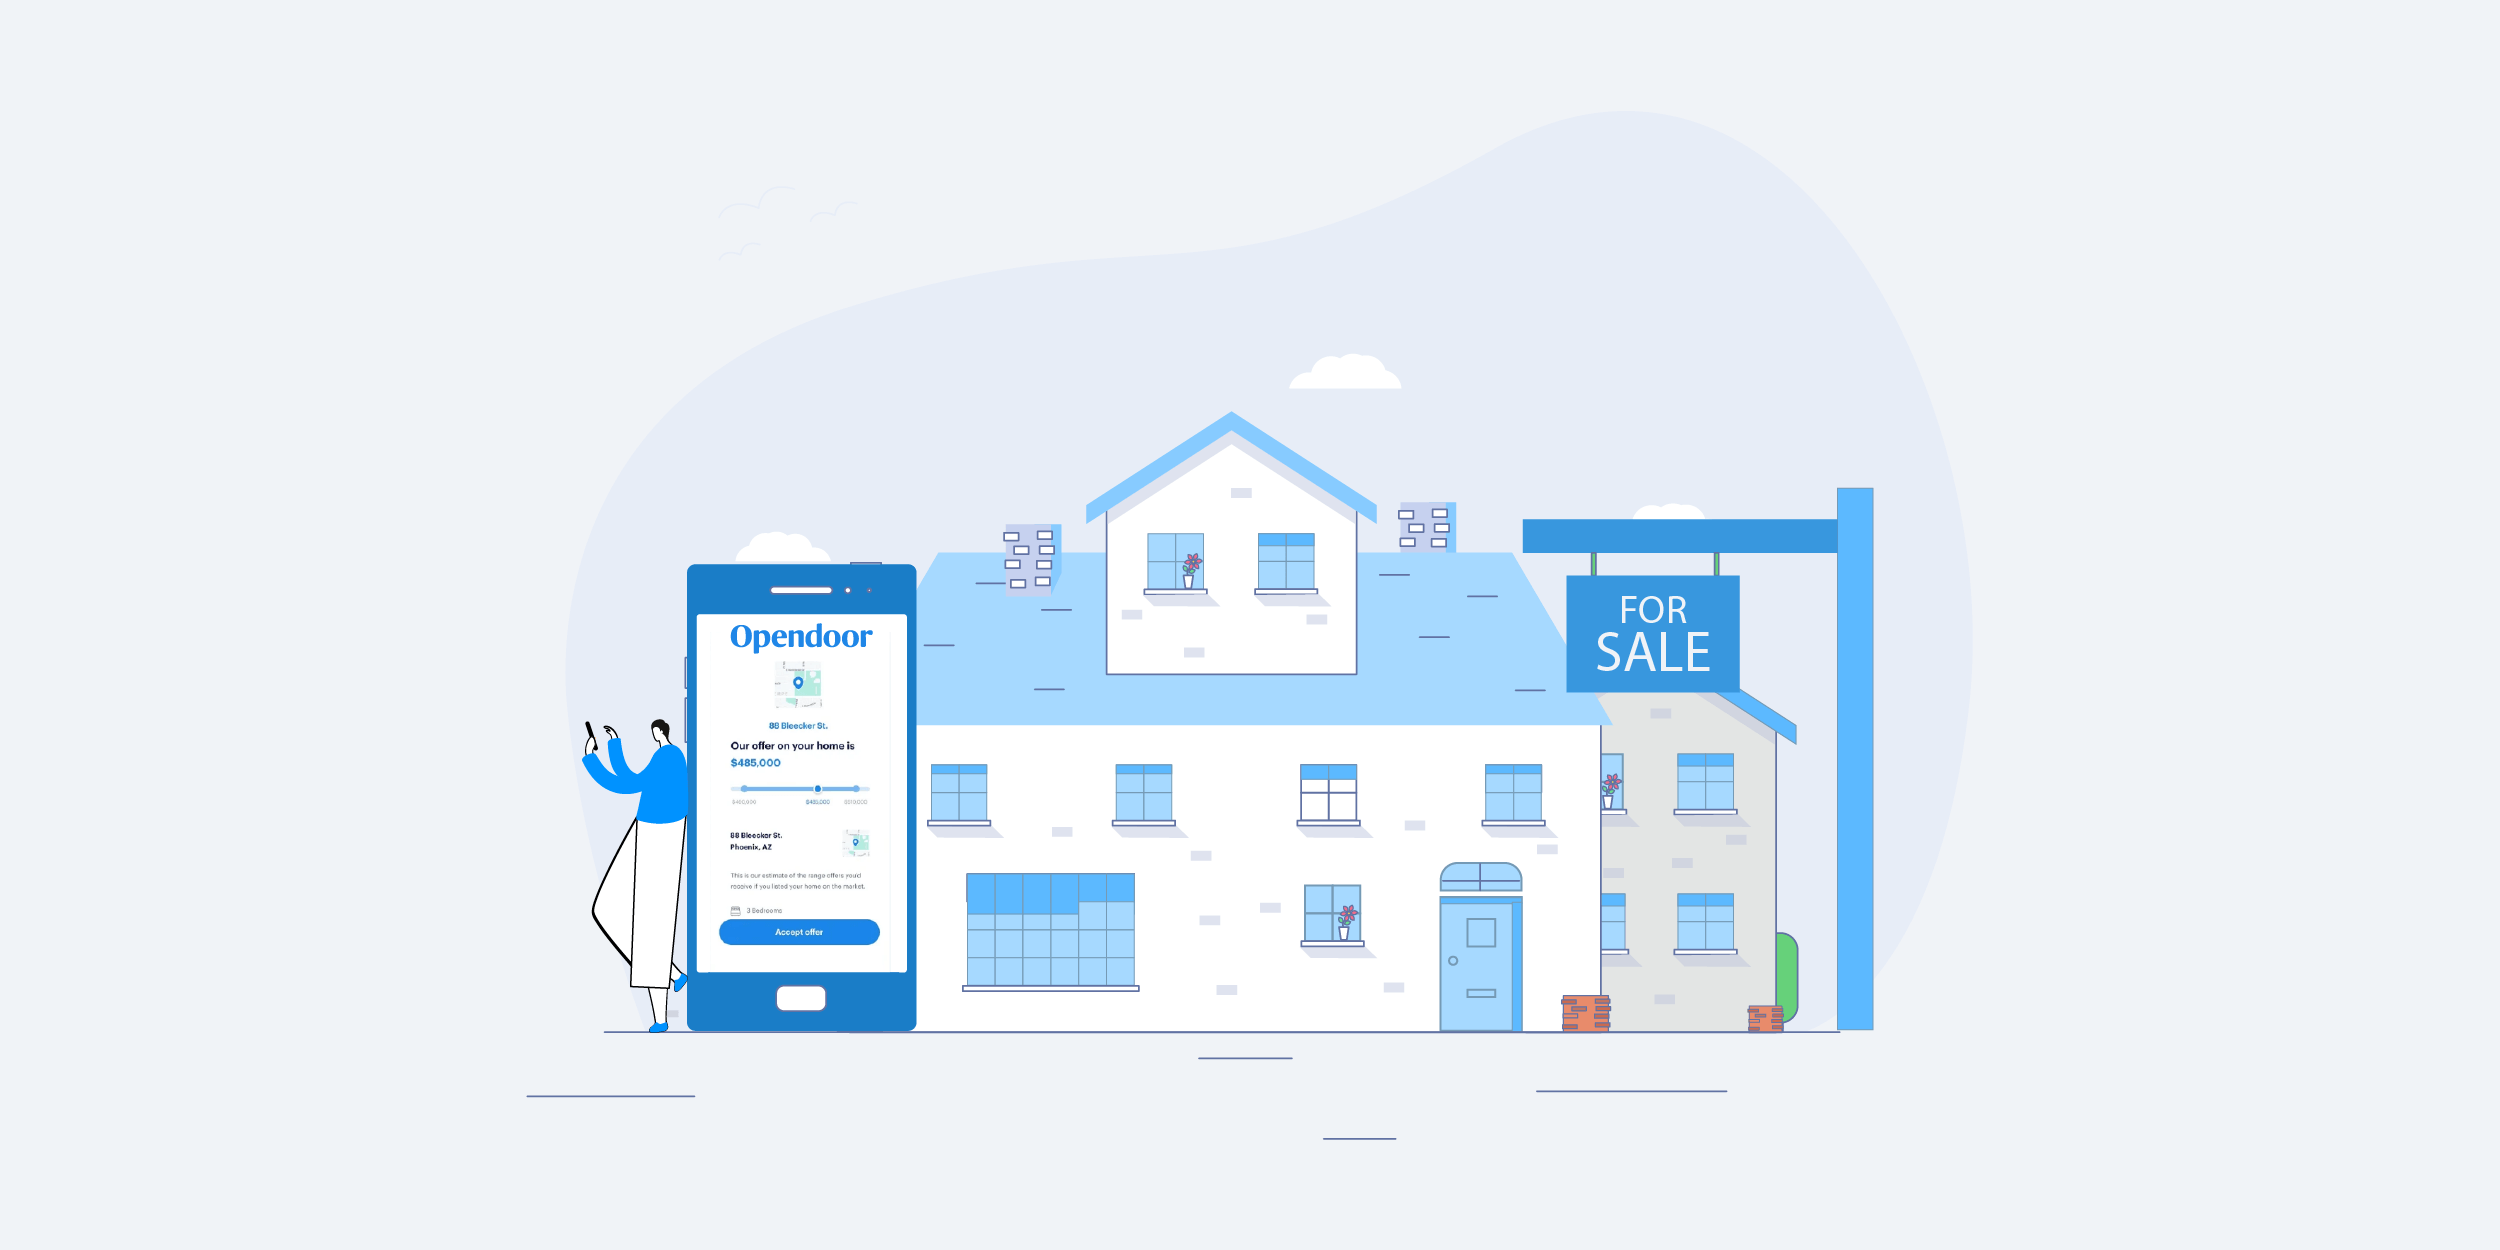 Opendoor App to Make Real-Estate Buying and Selling On-Demand